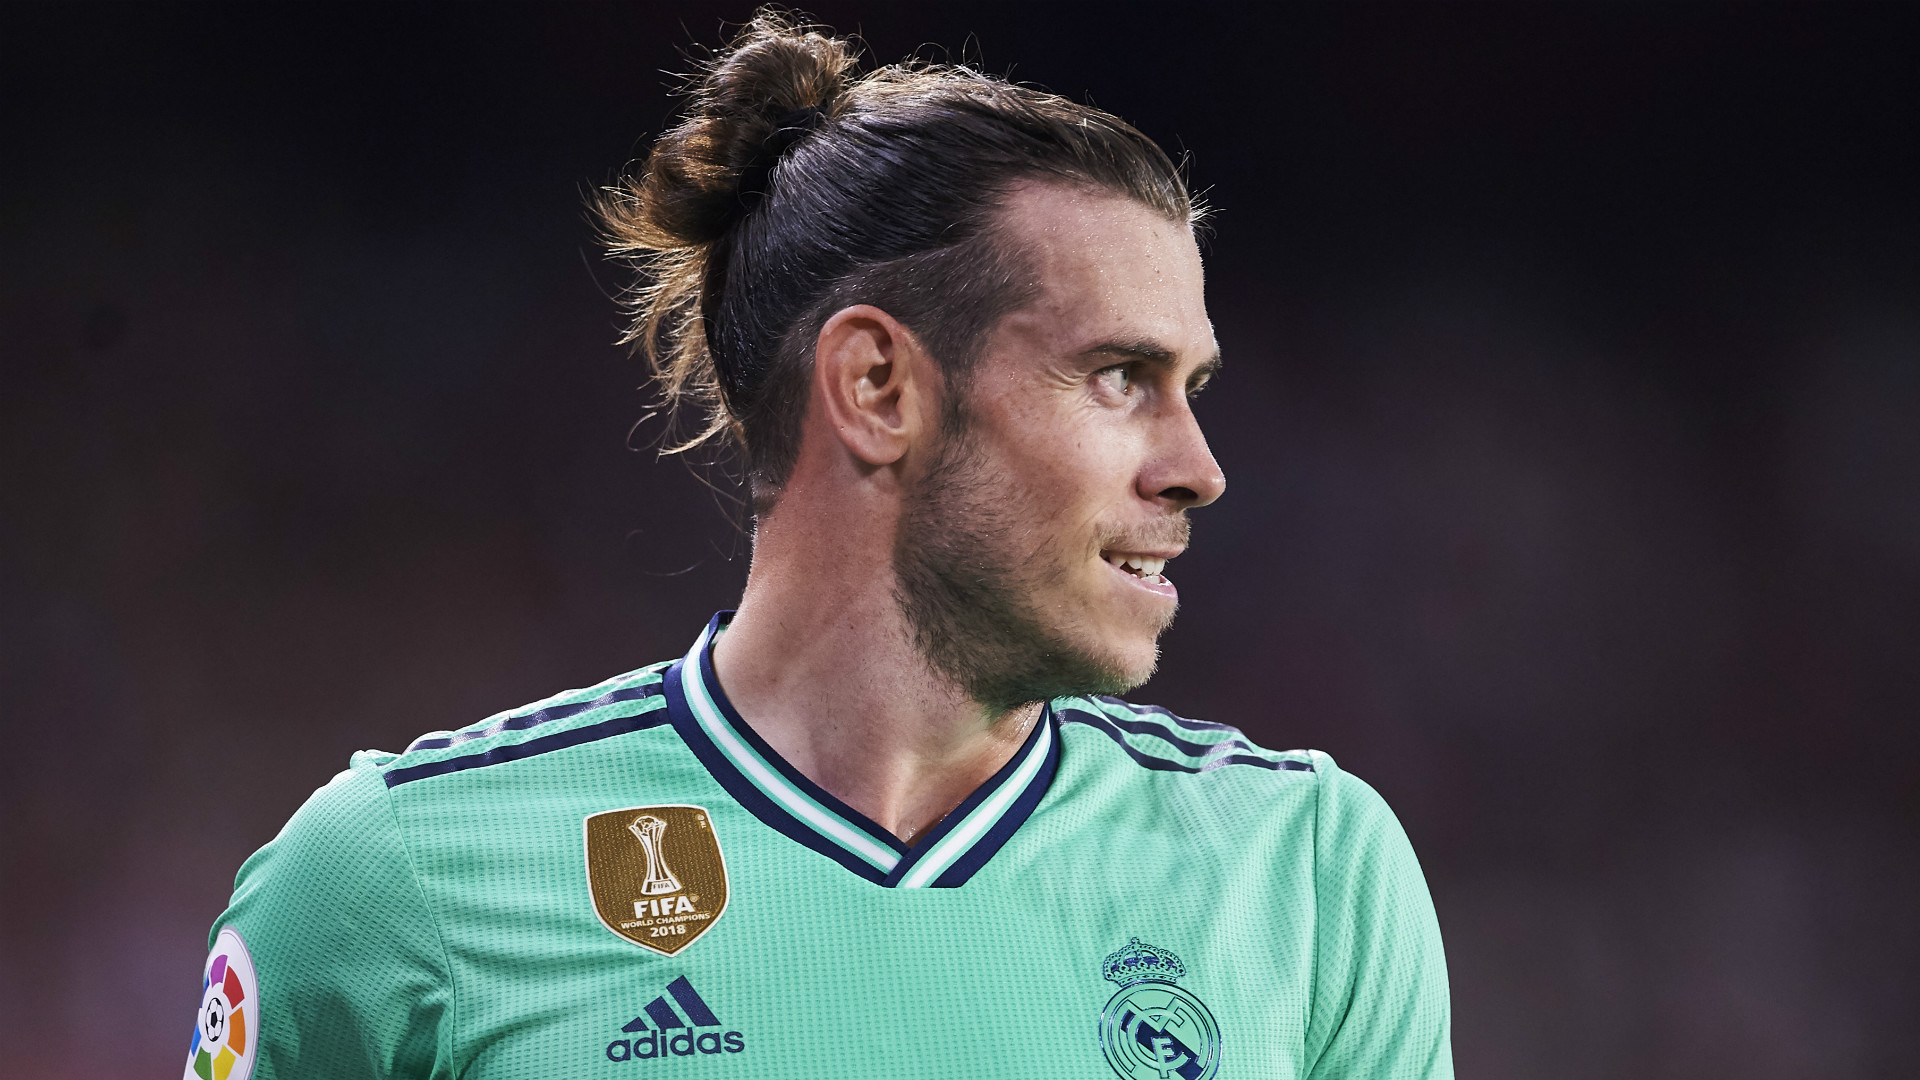 'Bale should consider Man Utd & Spurs' – 'Something isn't right' with Real Madrid injury problems, says Berbatov